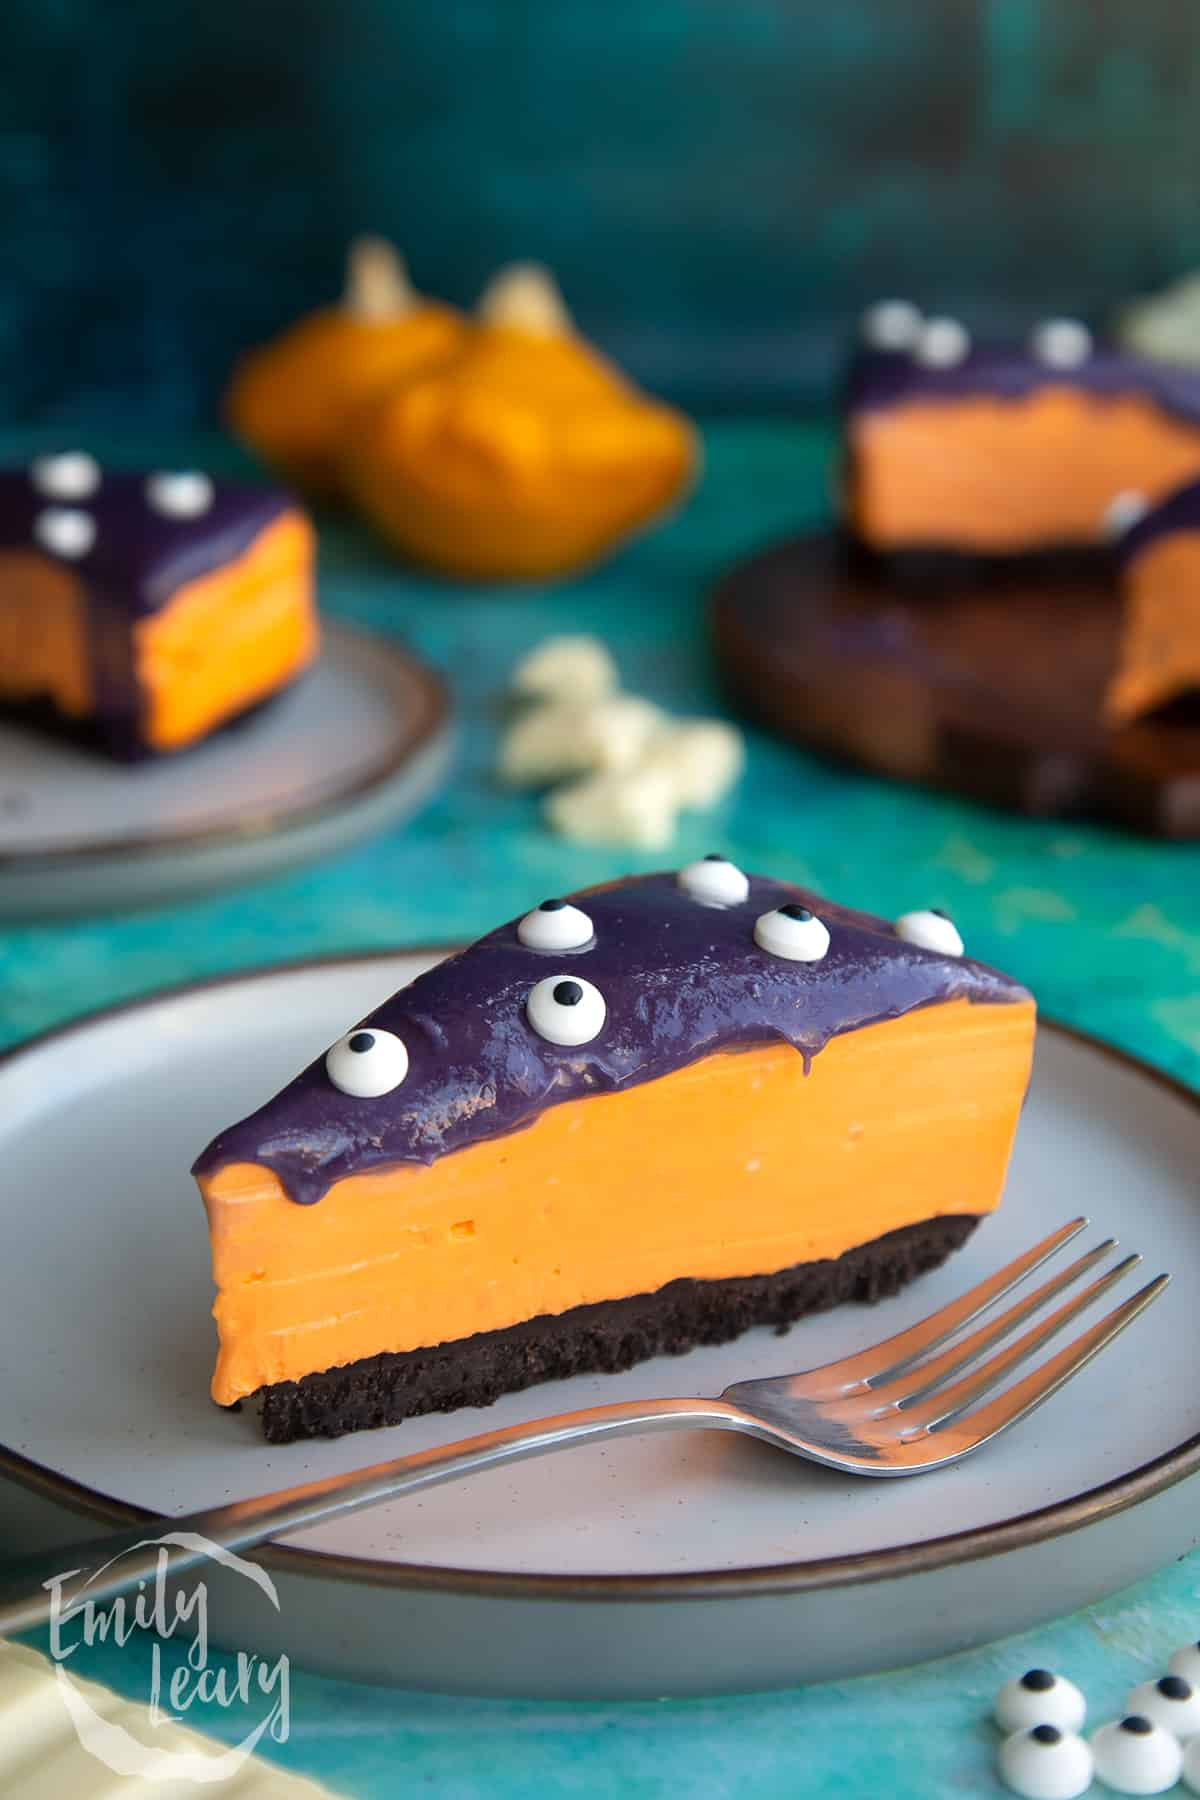 Slice of orange and strawberry Halloween cheesecake with an Oreo base on a plate with a fork.